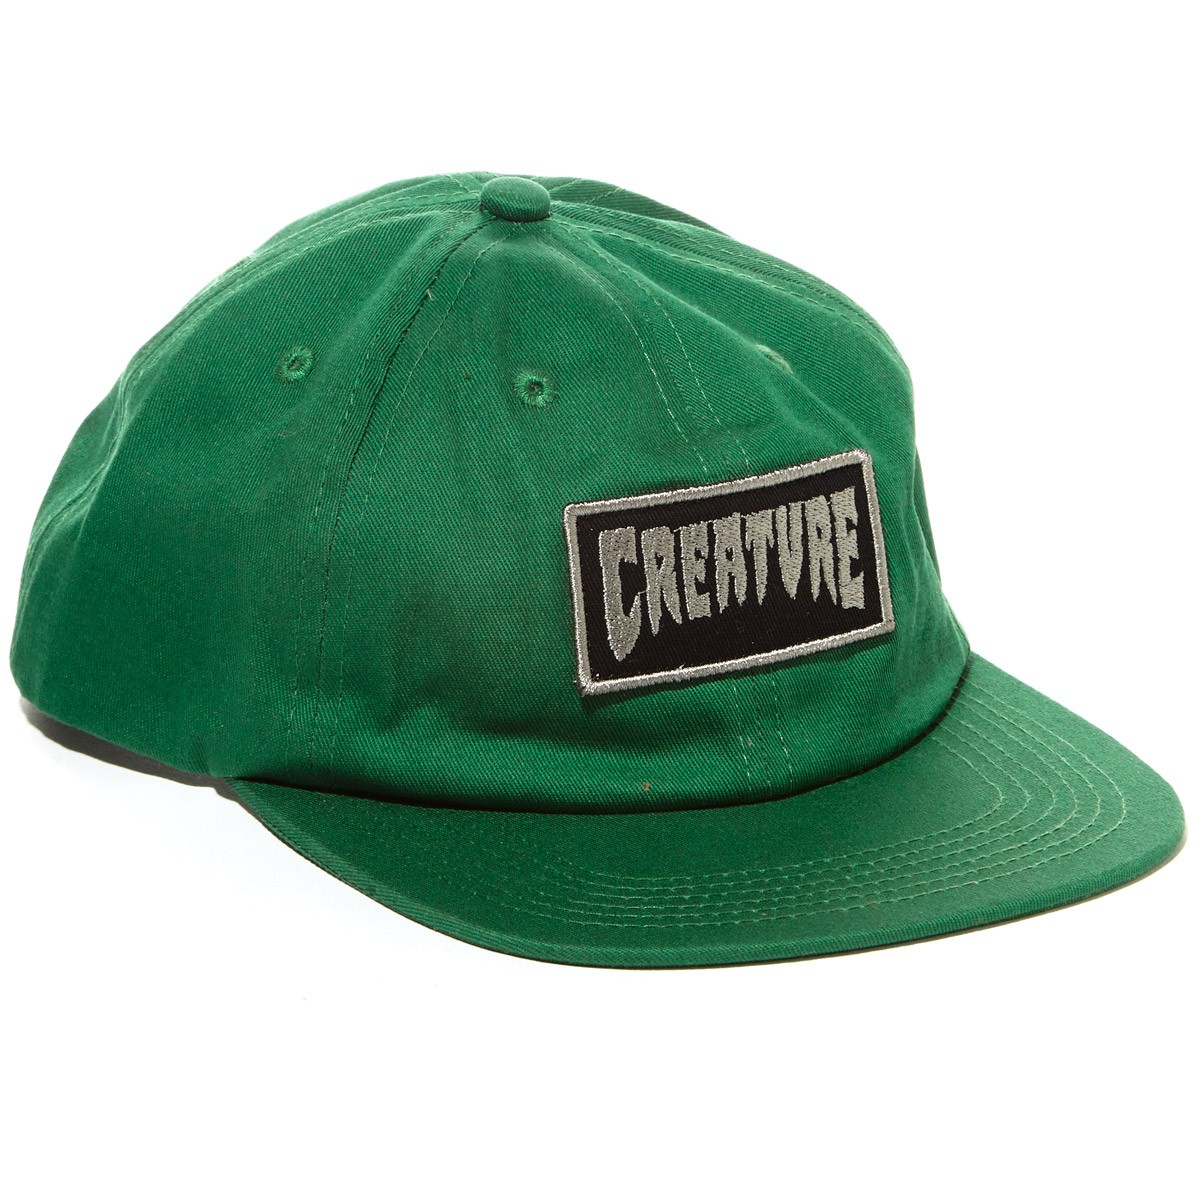 Creature Corpocorpse Snapback Hat 961afd48fcd